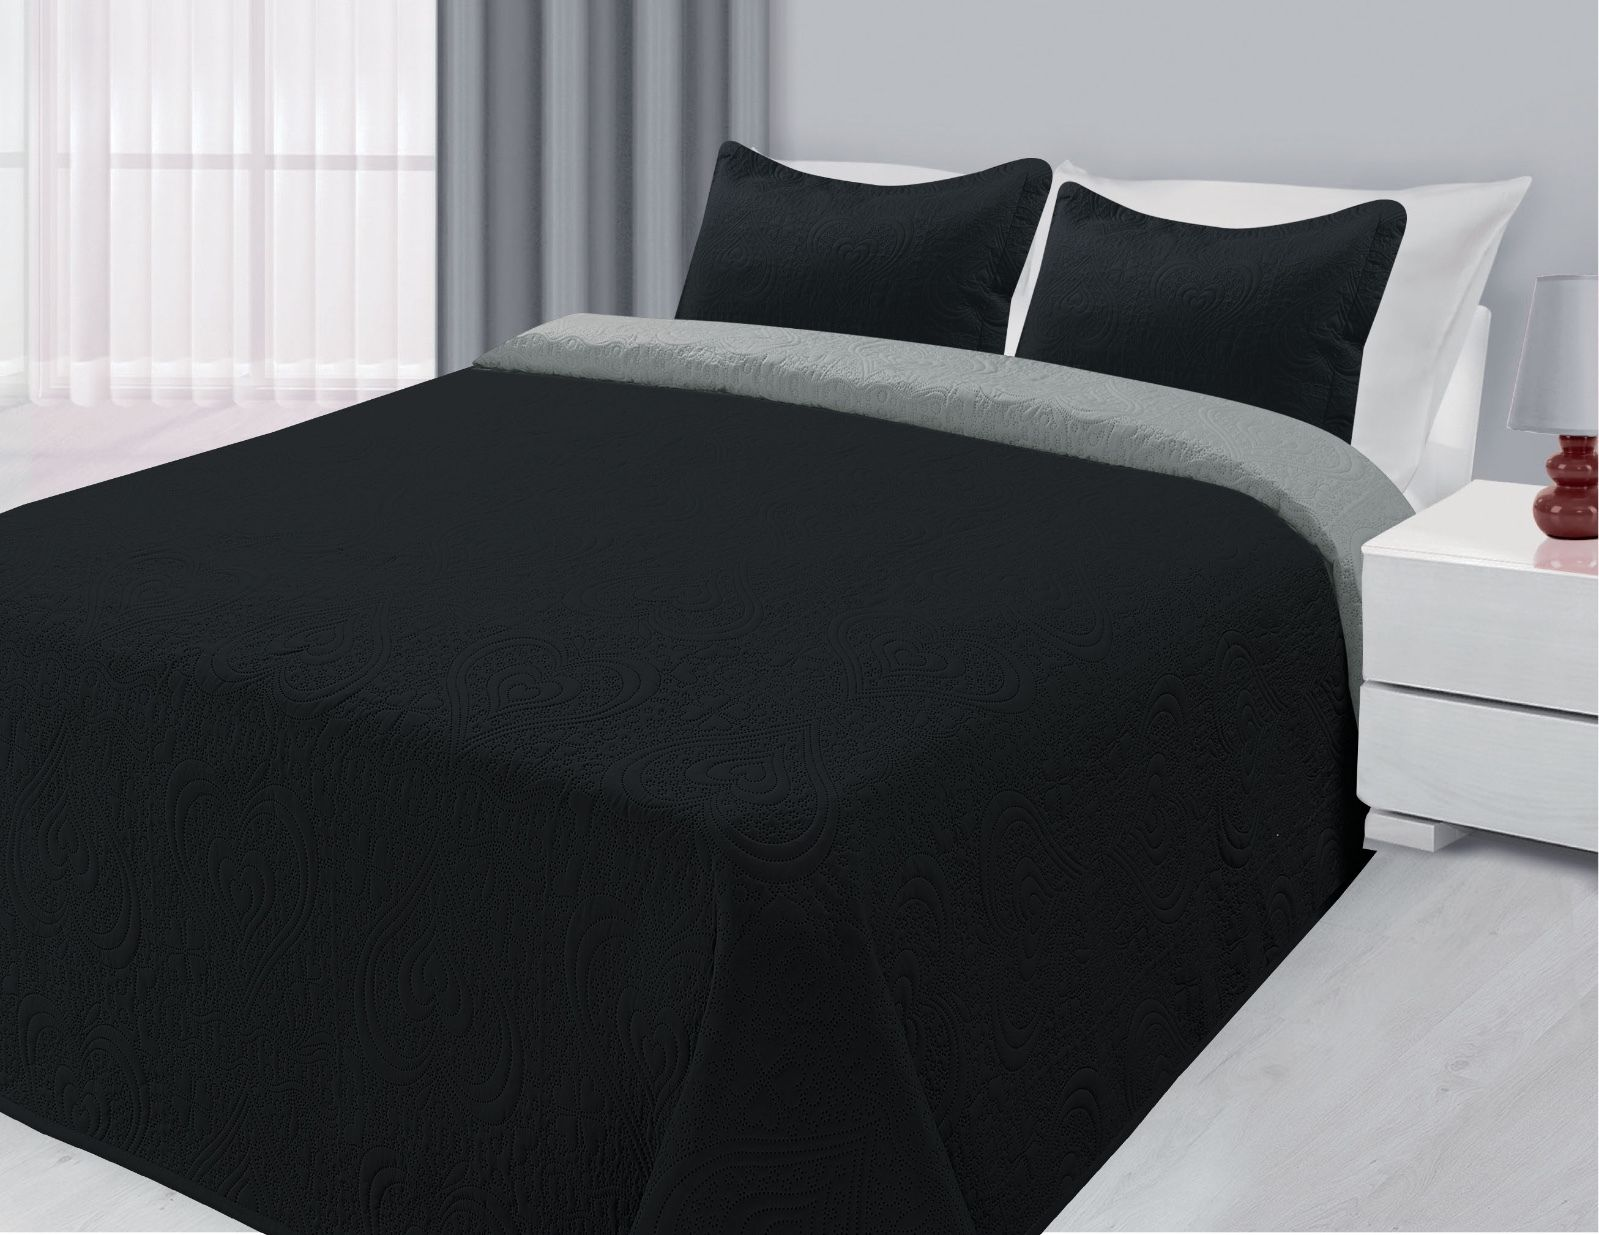 3-Piece Reversible Quilted Bedspread Coverlet Black & Silver King Size by